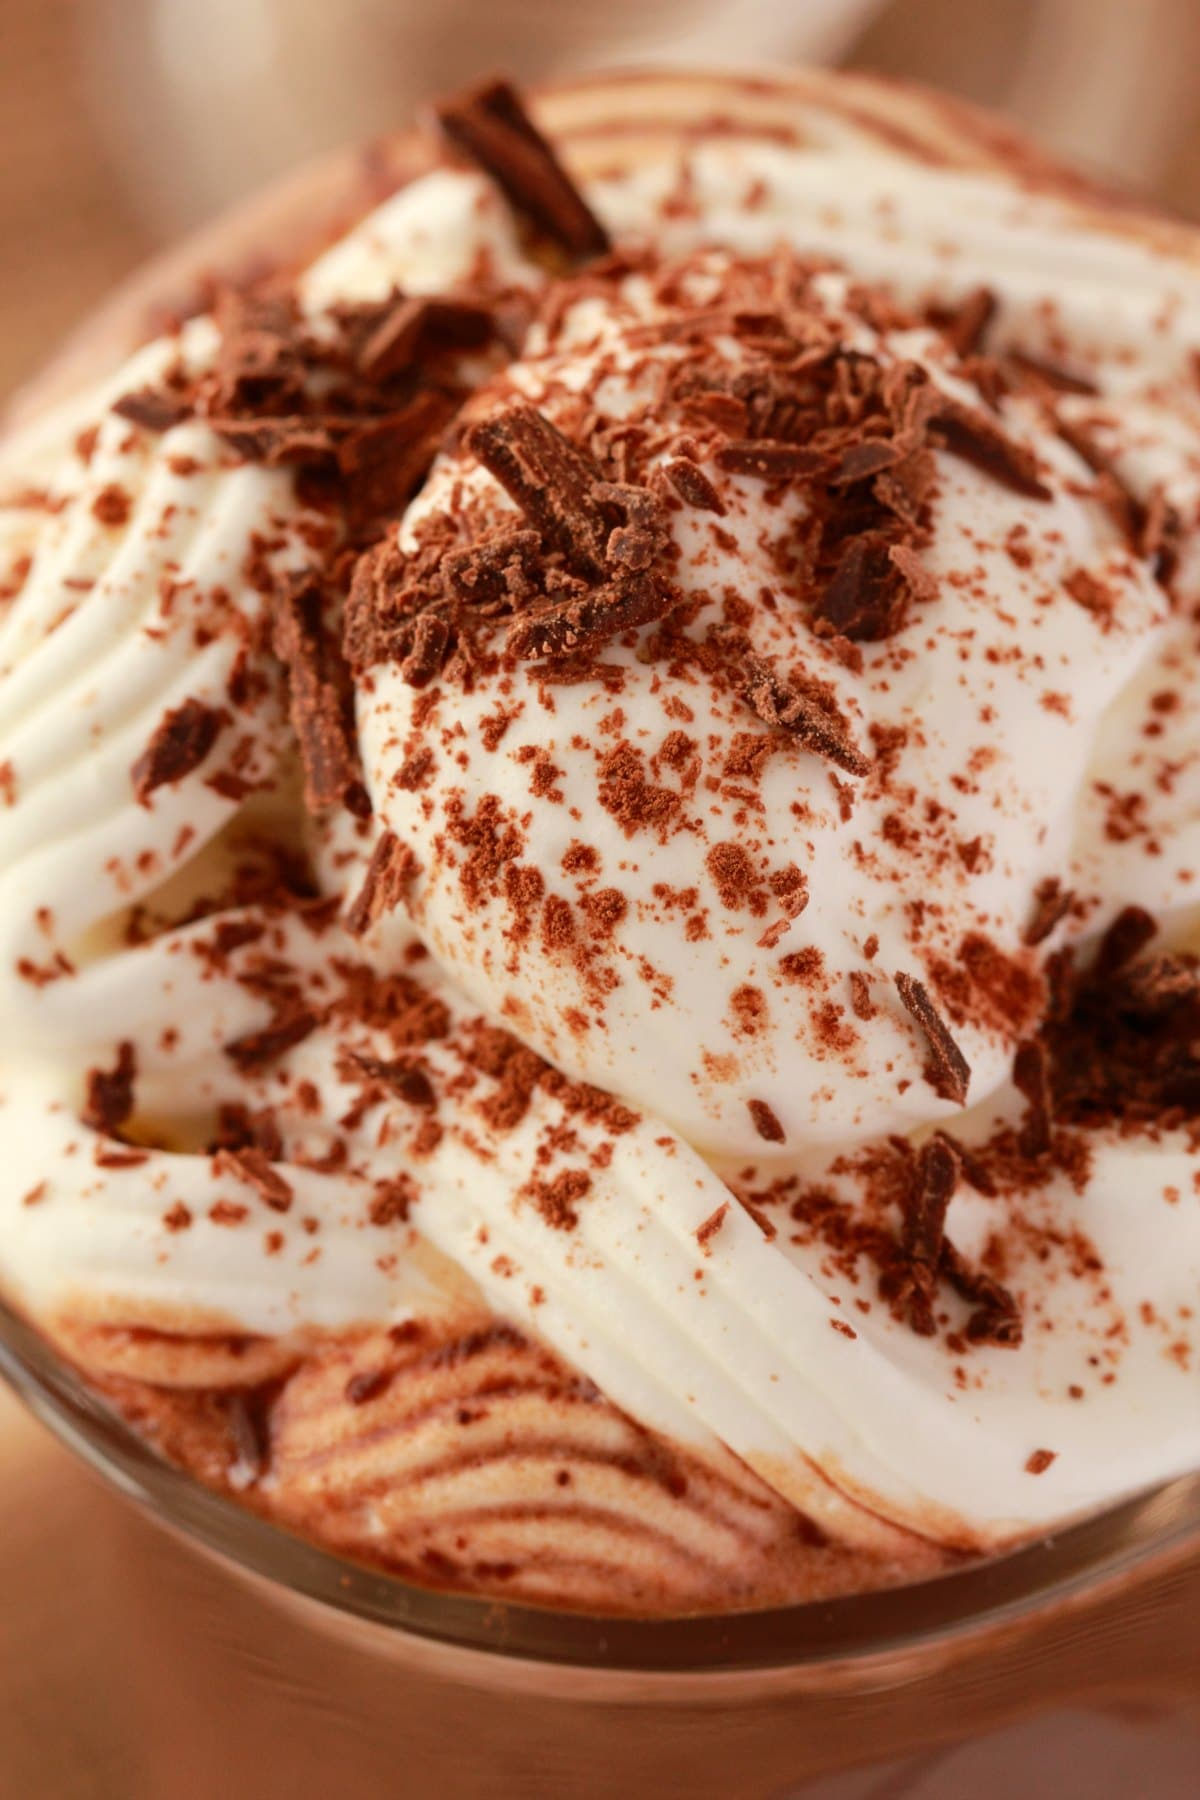 Vegan hot chocolate topped with whipped cream and chocolate shavings.